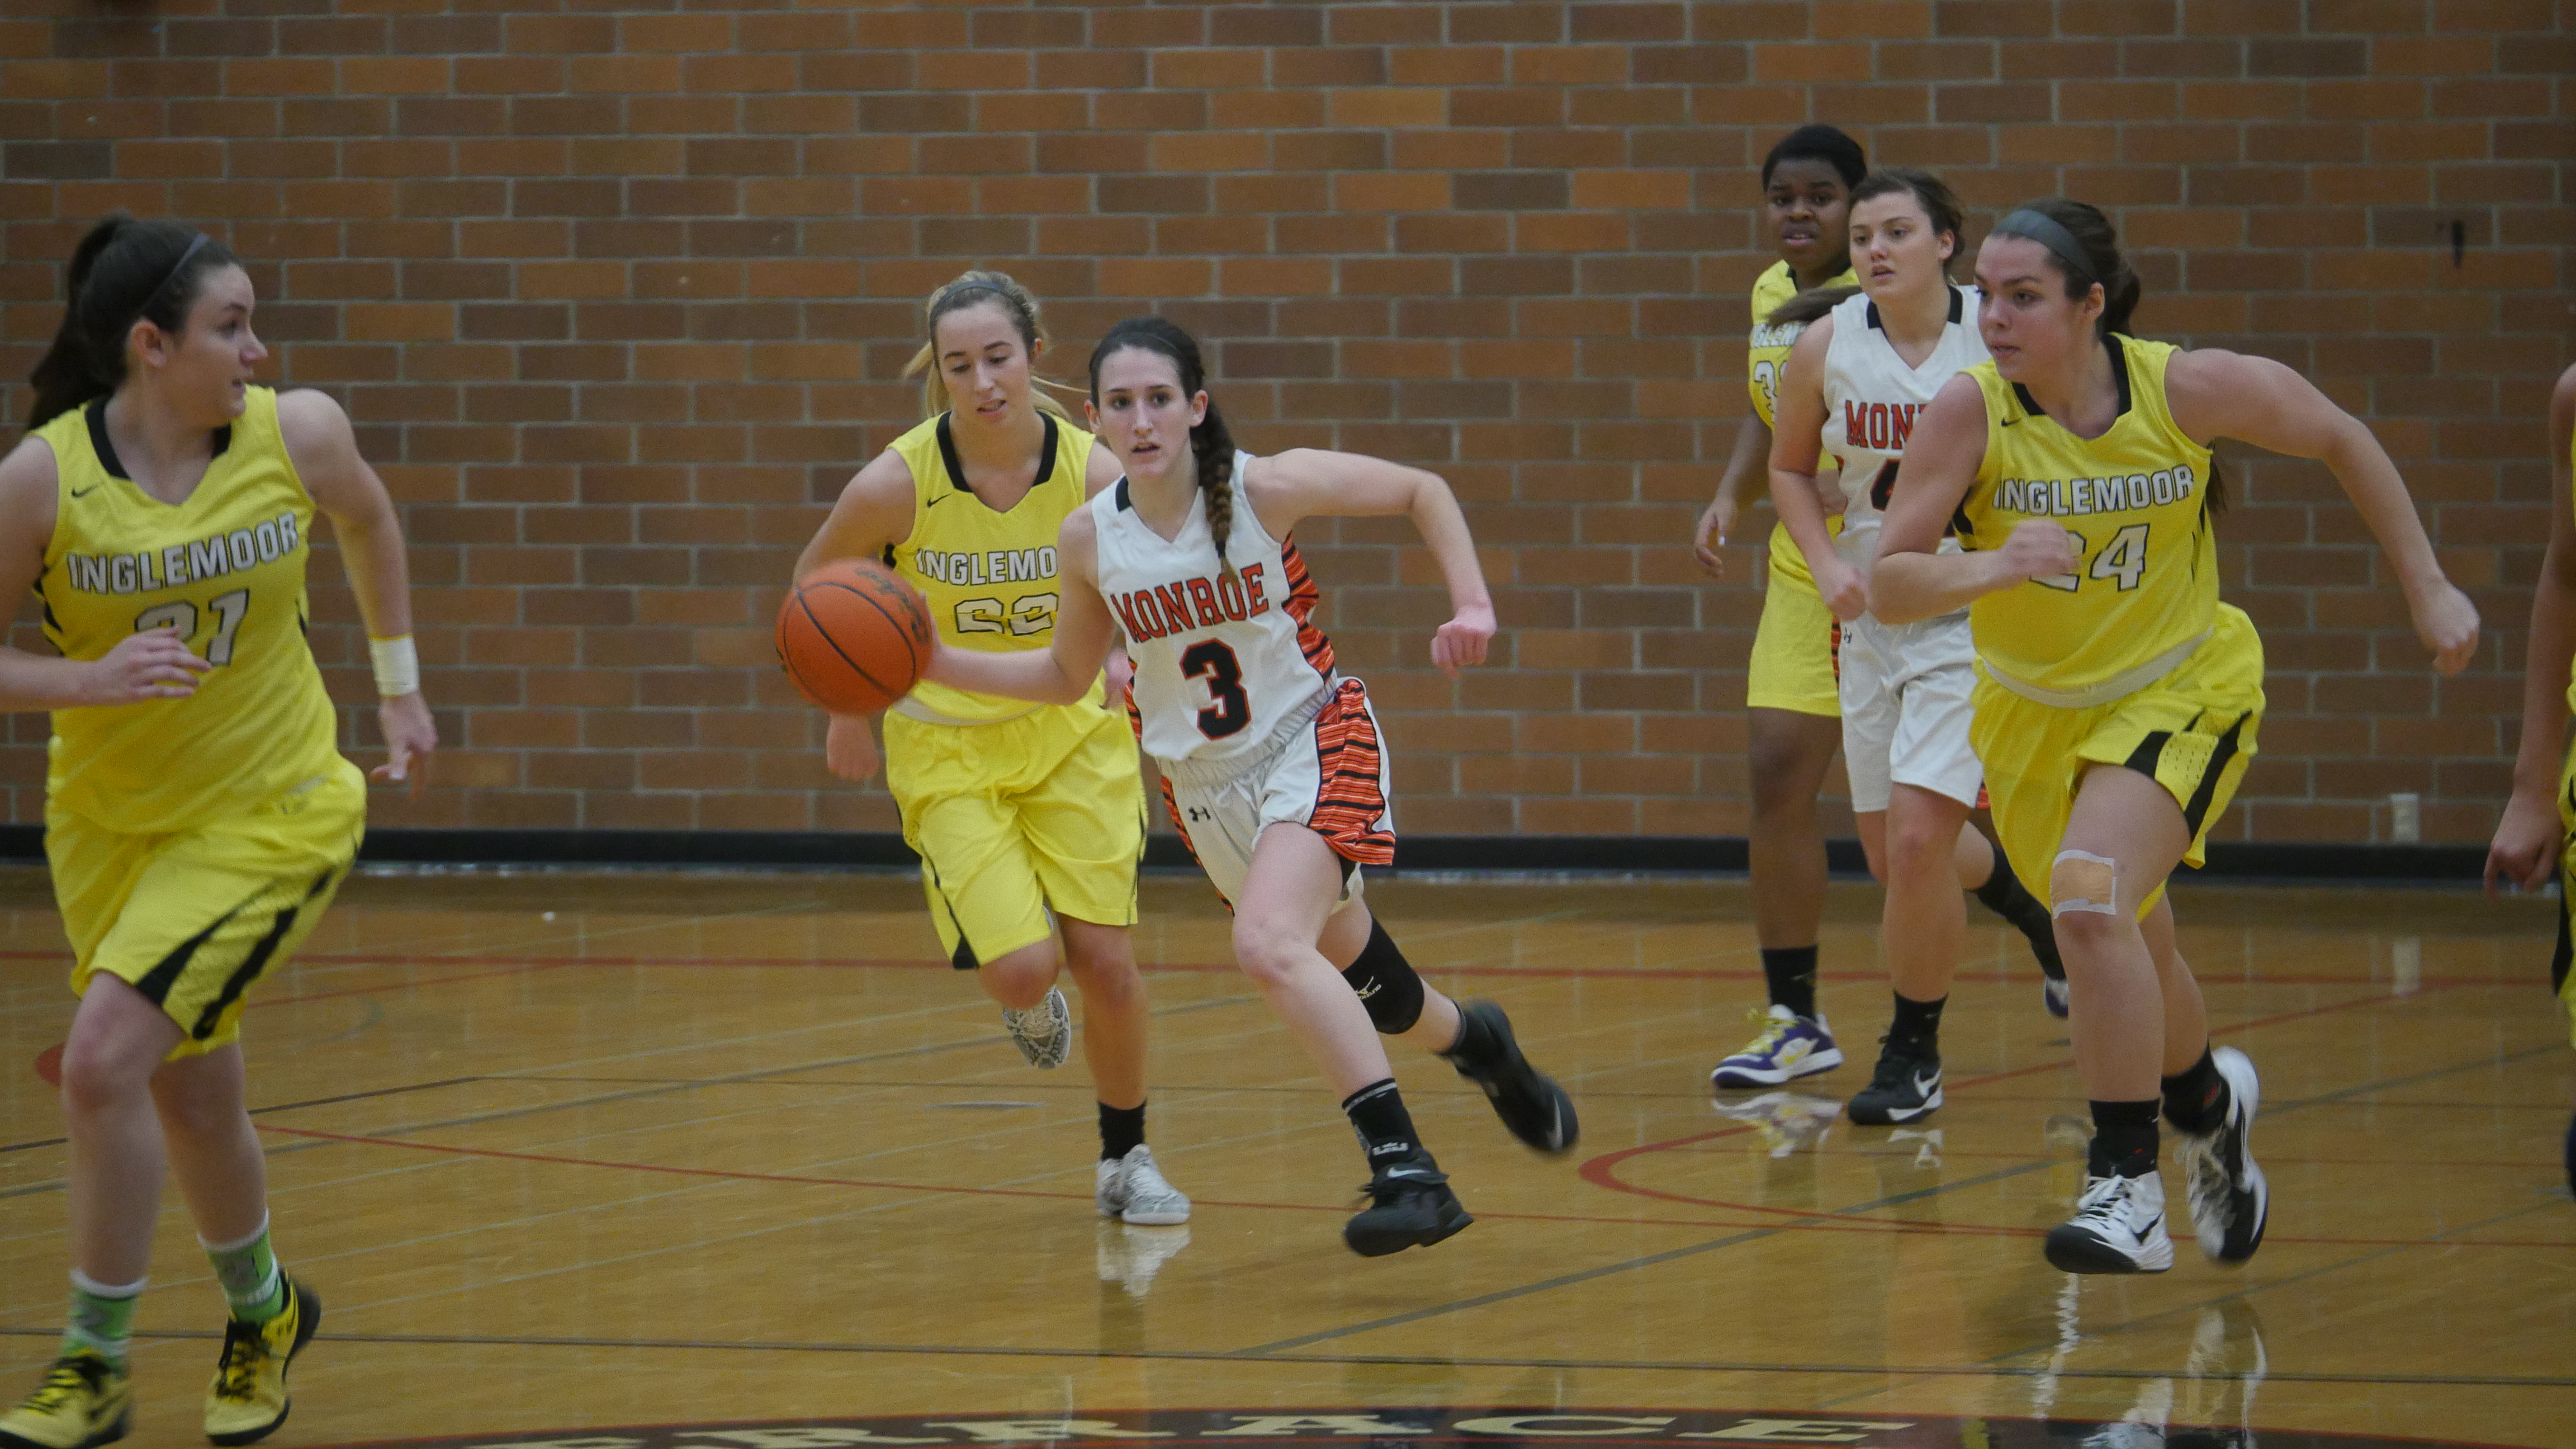 Monroe's Kylee Ferreira leads a fast break during the tournament game against Inglemoor.